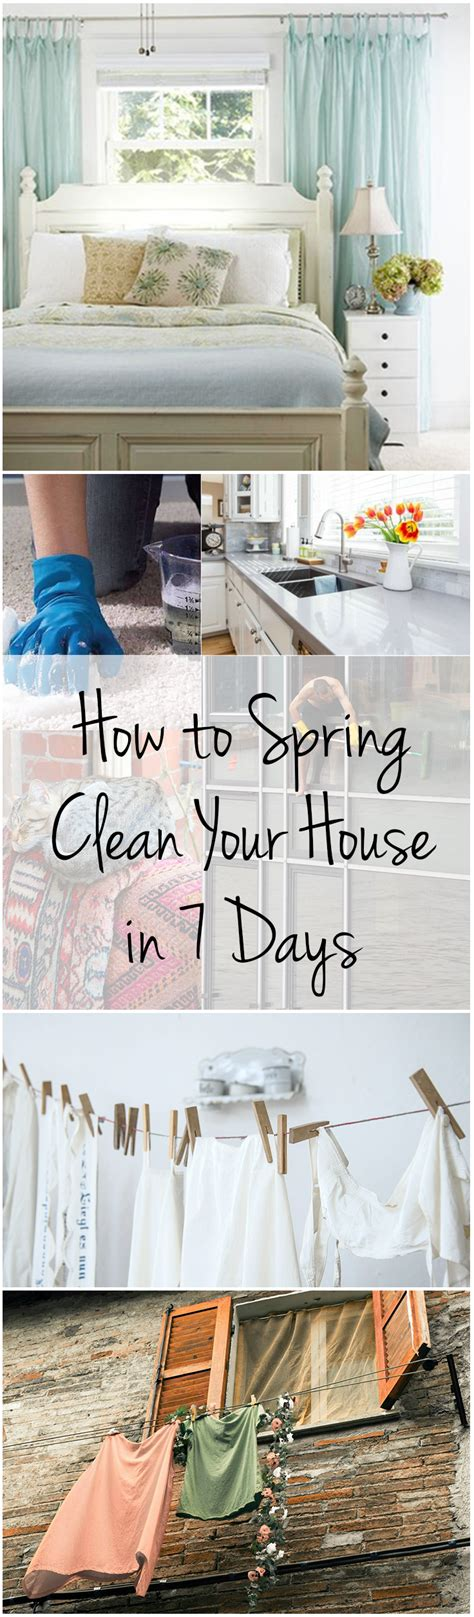 how to spring clean your house in a day how to quot spring clean quot your house in 7 days wrapped in rust